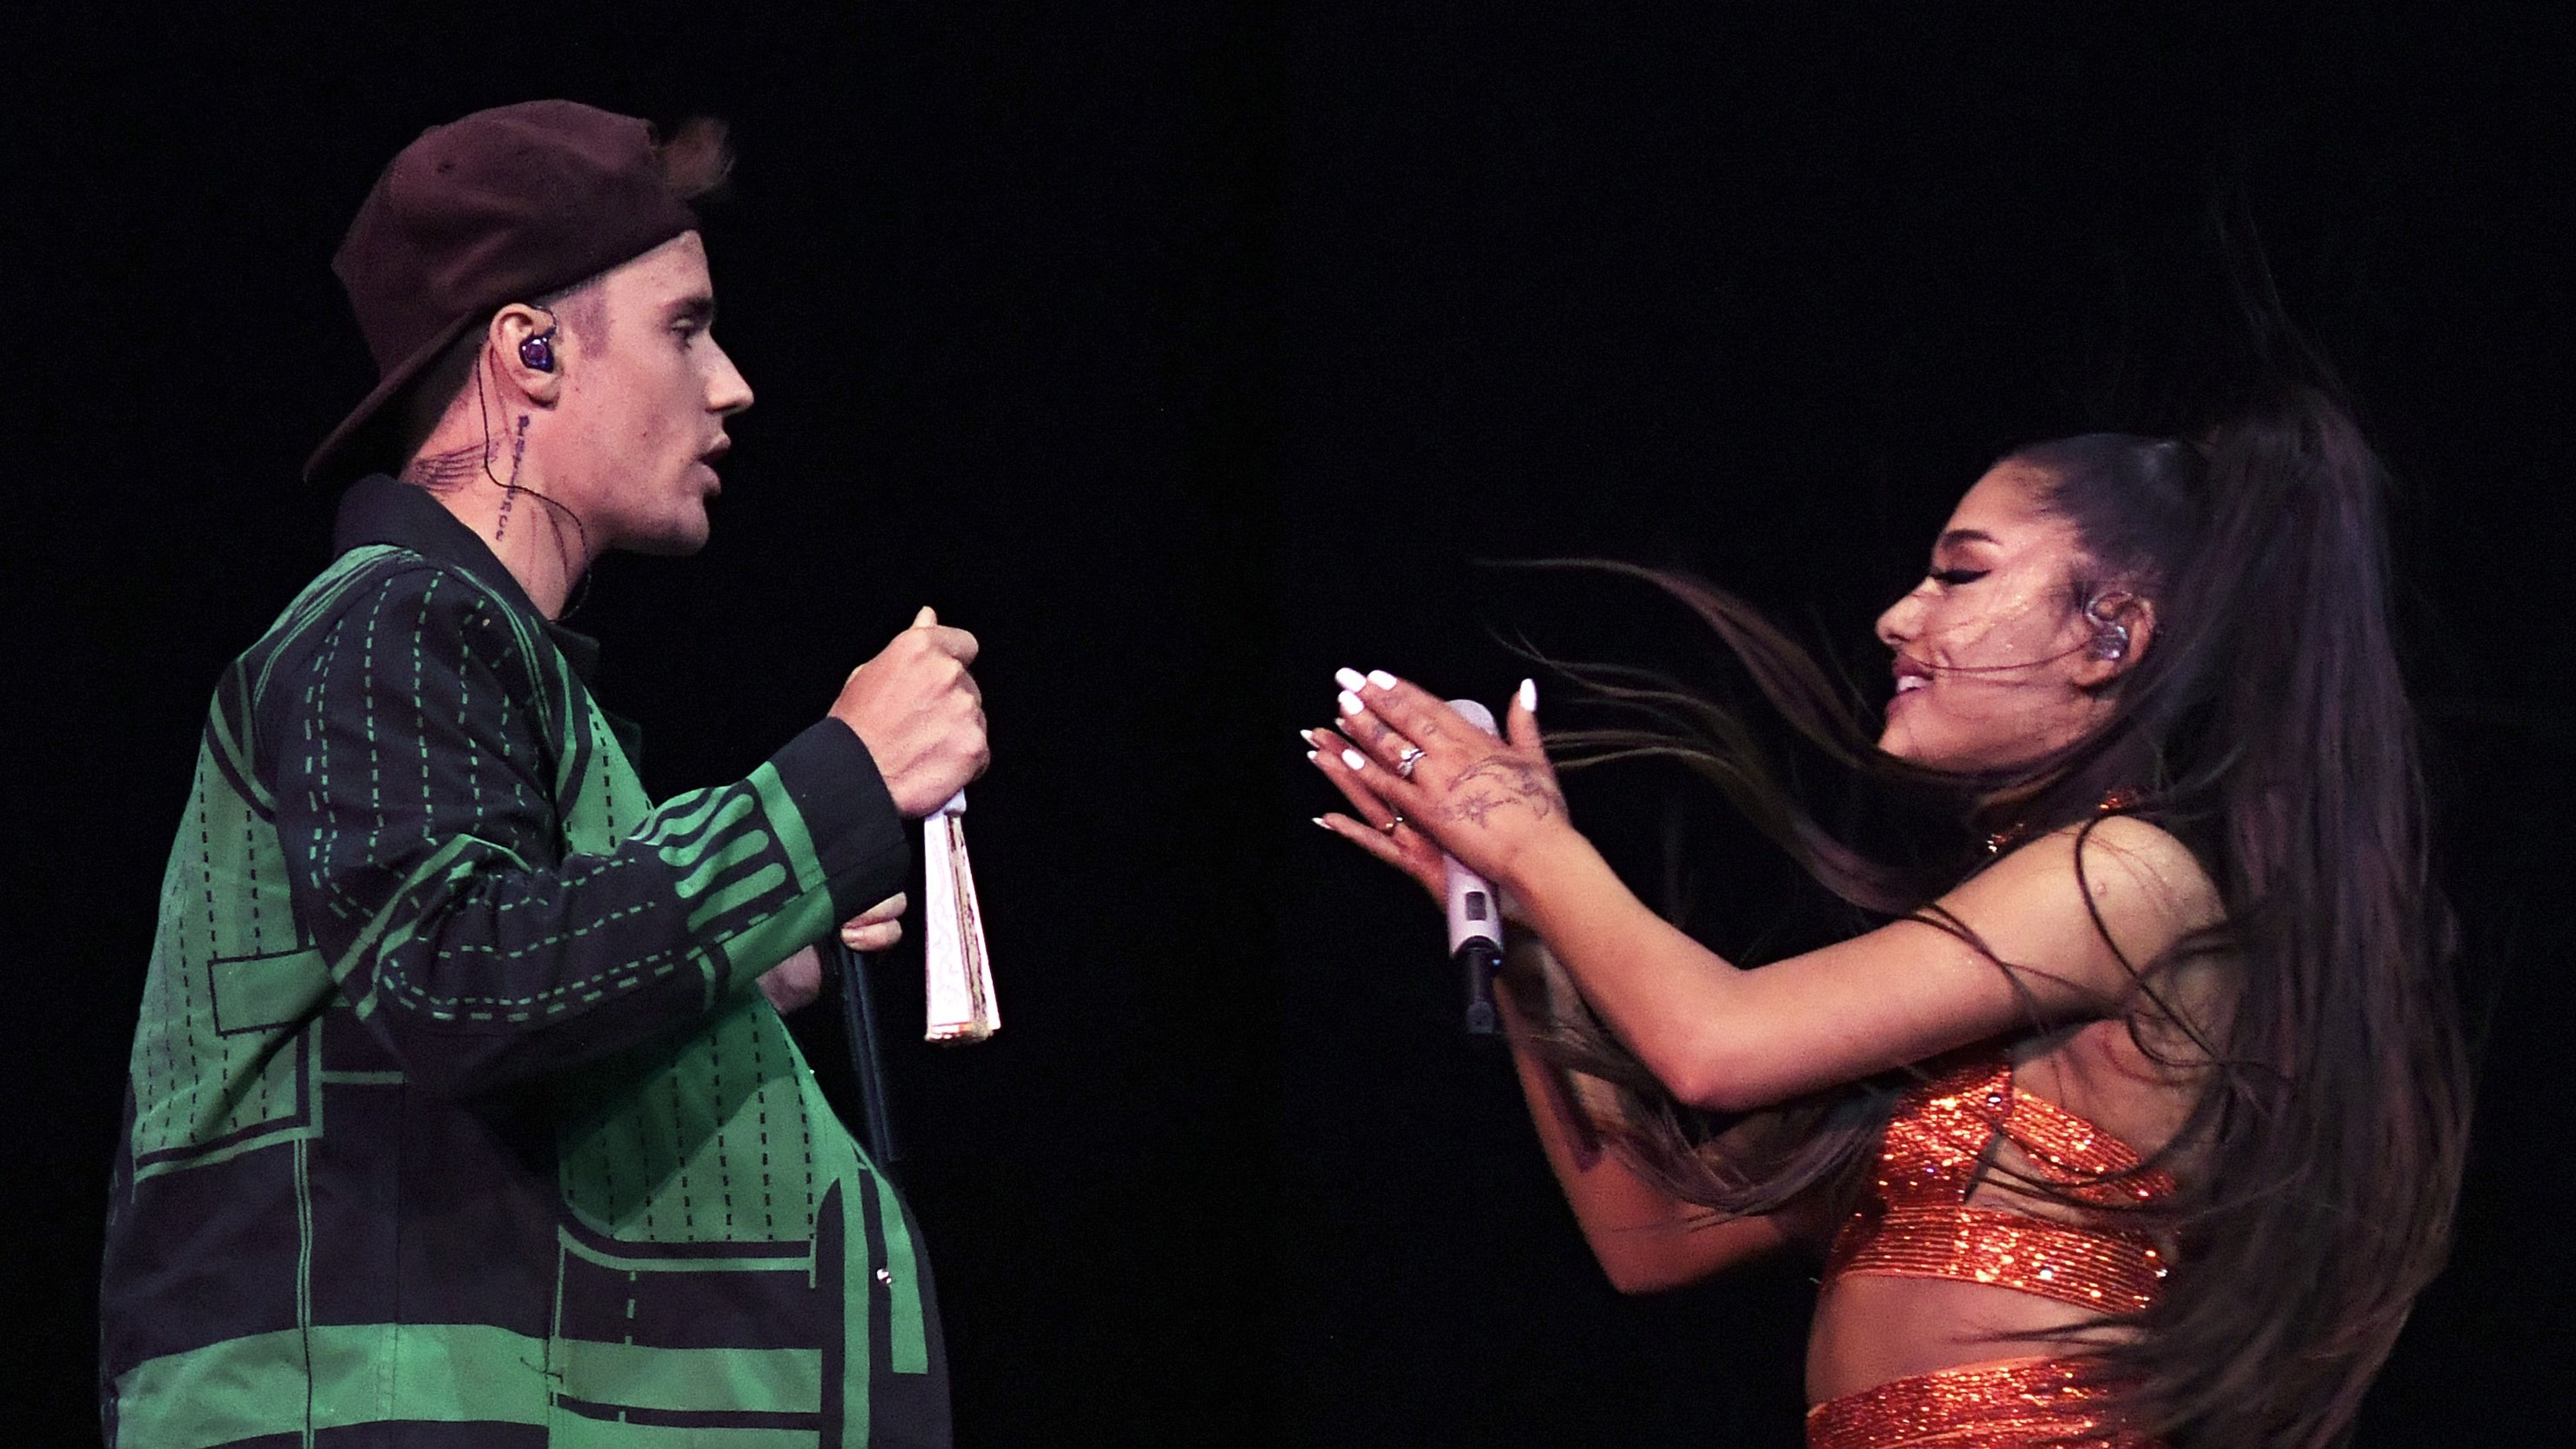 Justin Bieber joins Ariana Grande at Coachella for his first public performance in 2 years